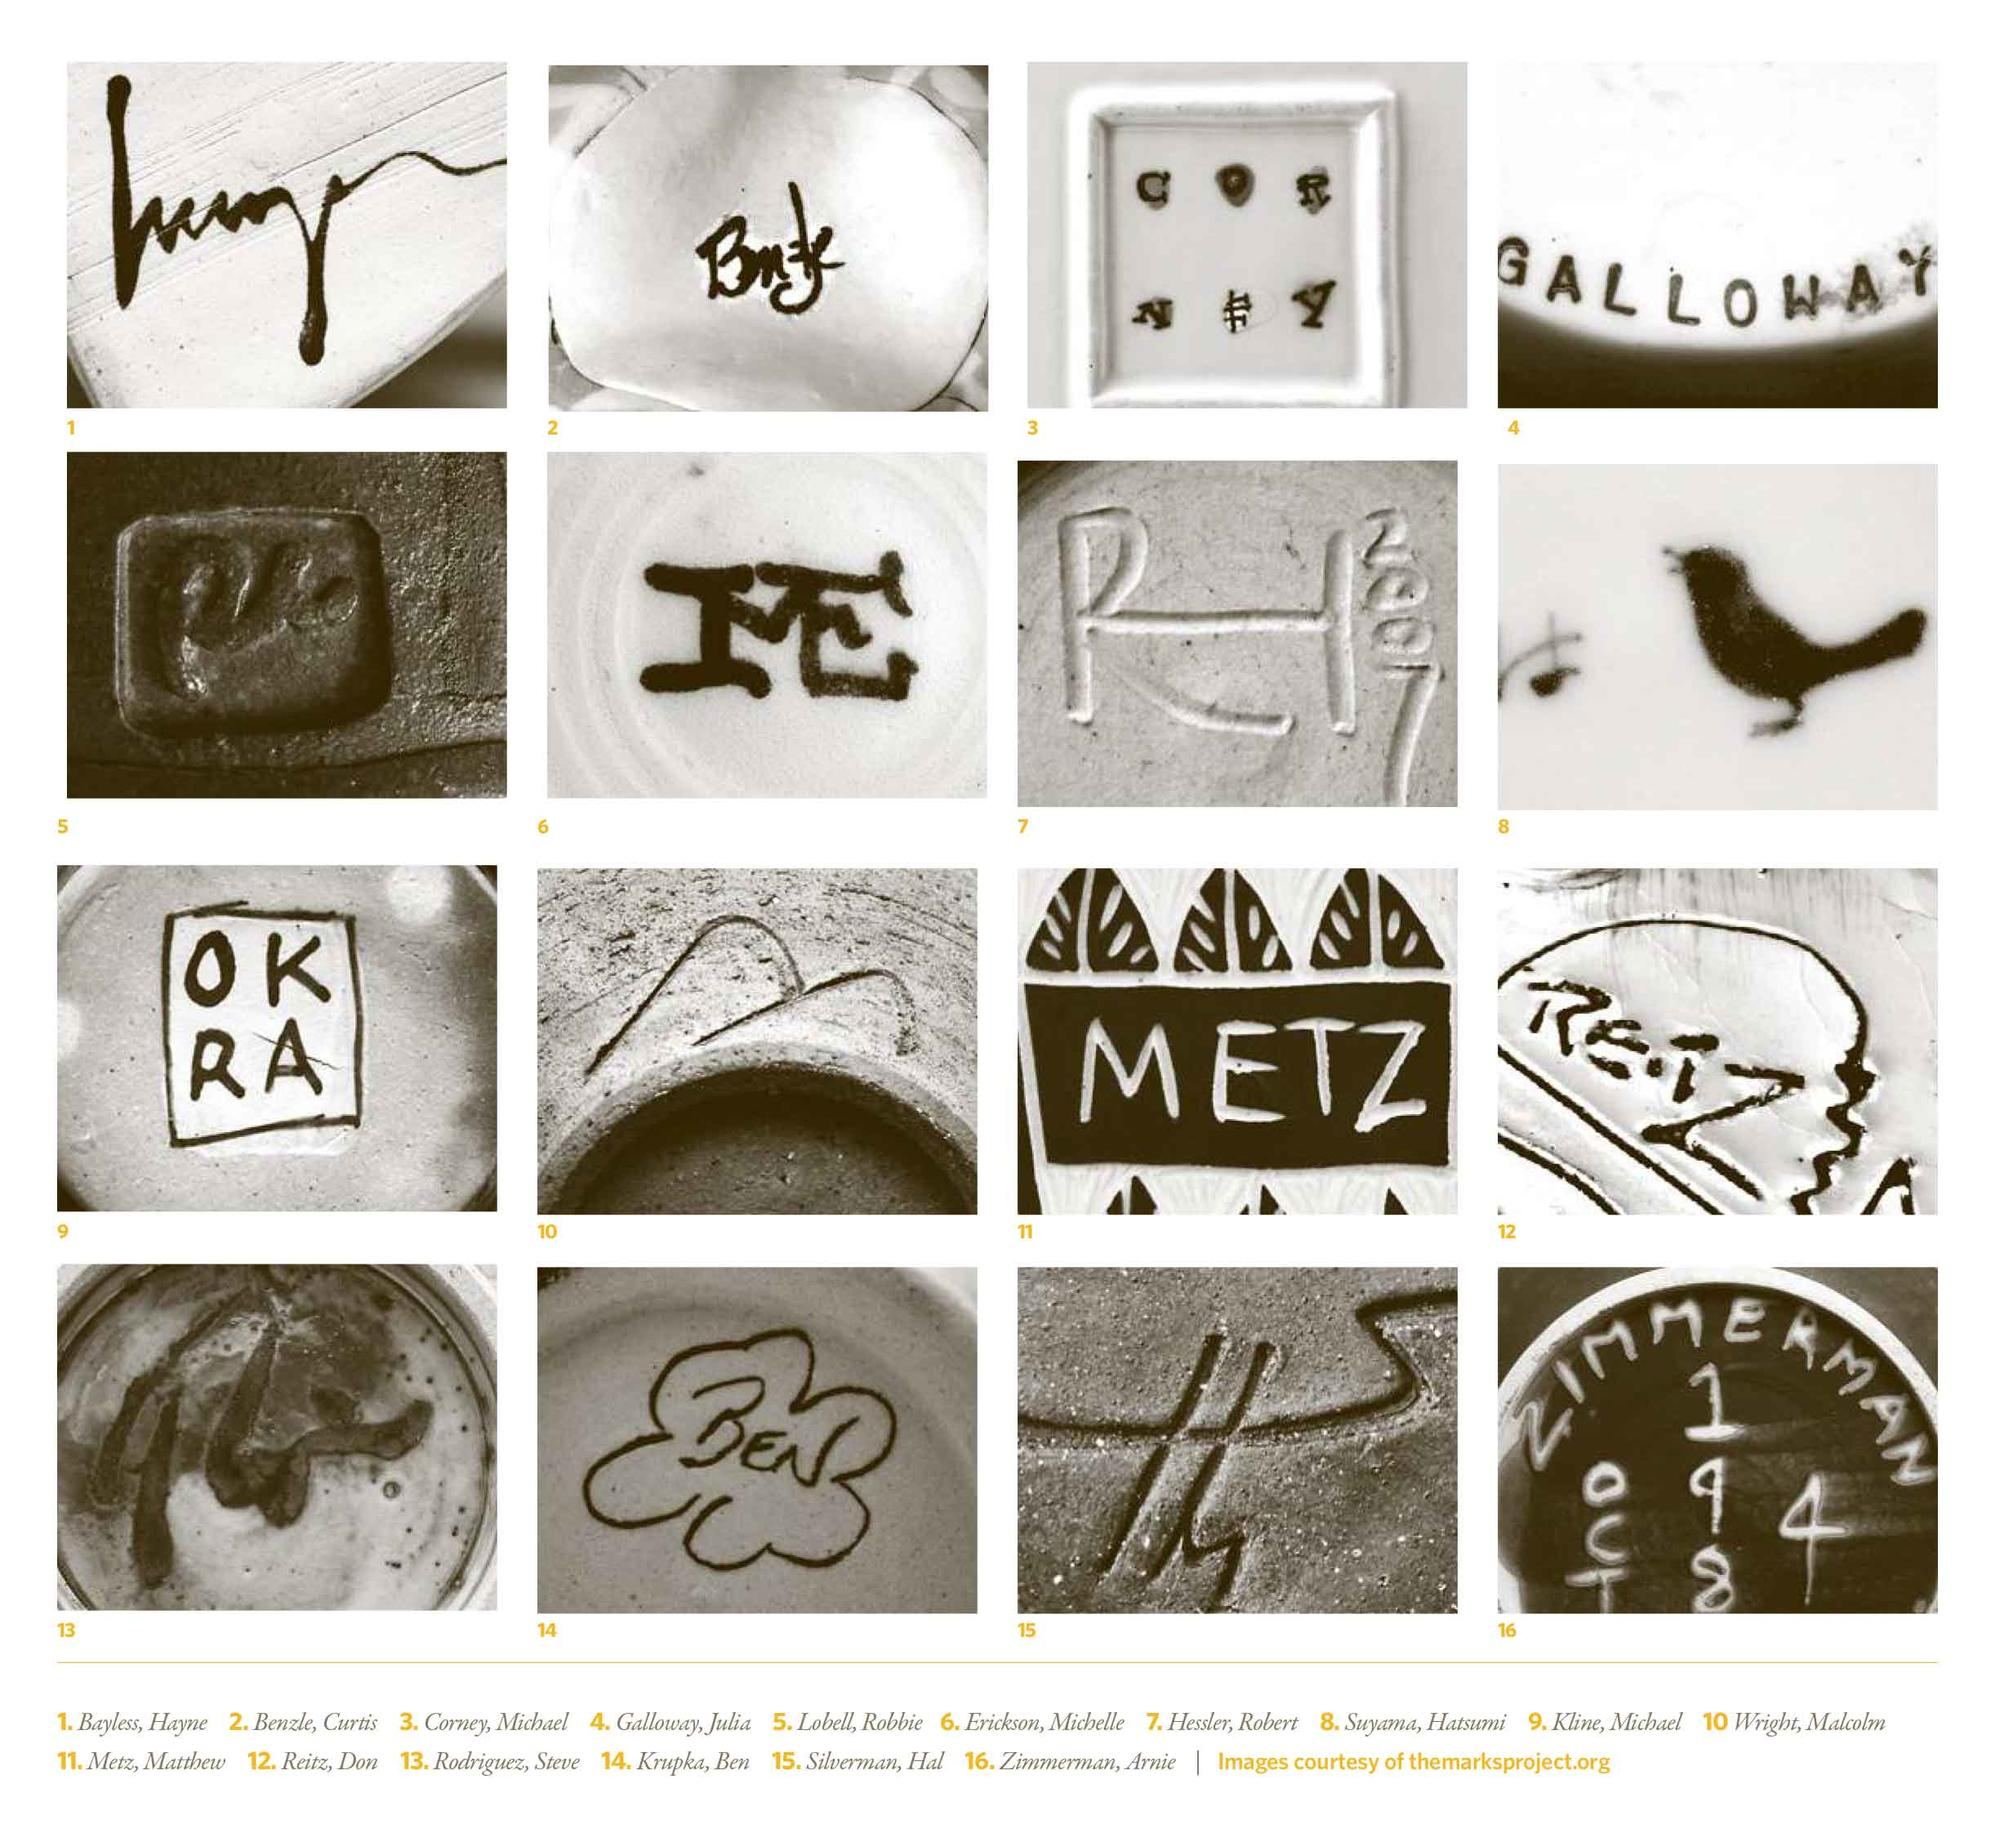 photo collage of 16 different potters' marks.